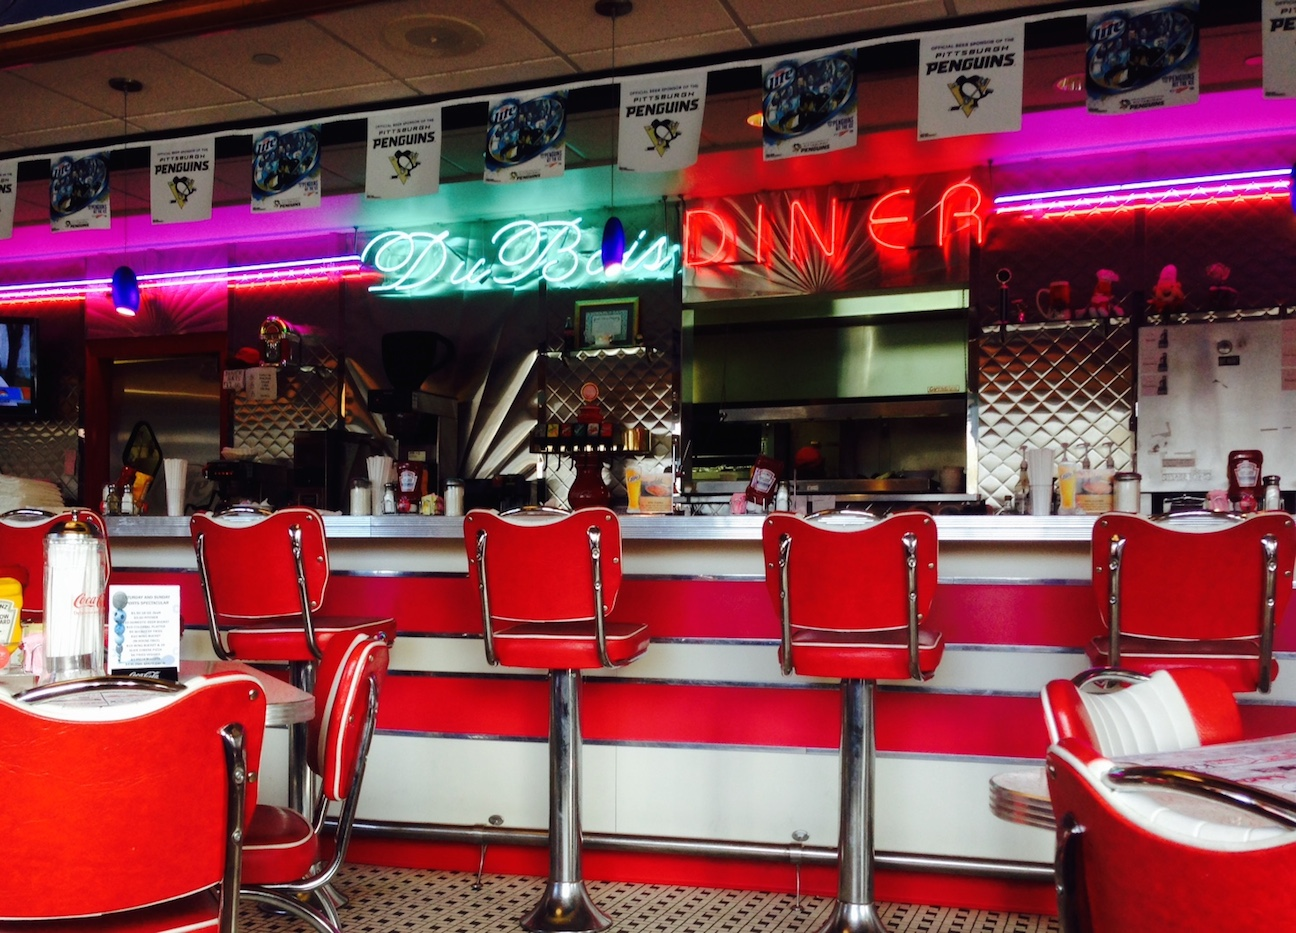 White apron menu - The Diner Has An Over The Top Expansive Menu Numerous Breakfast Options Anytime Of Course Offering The Standard Diner Fare Including Blue Plate Dinners